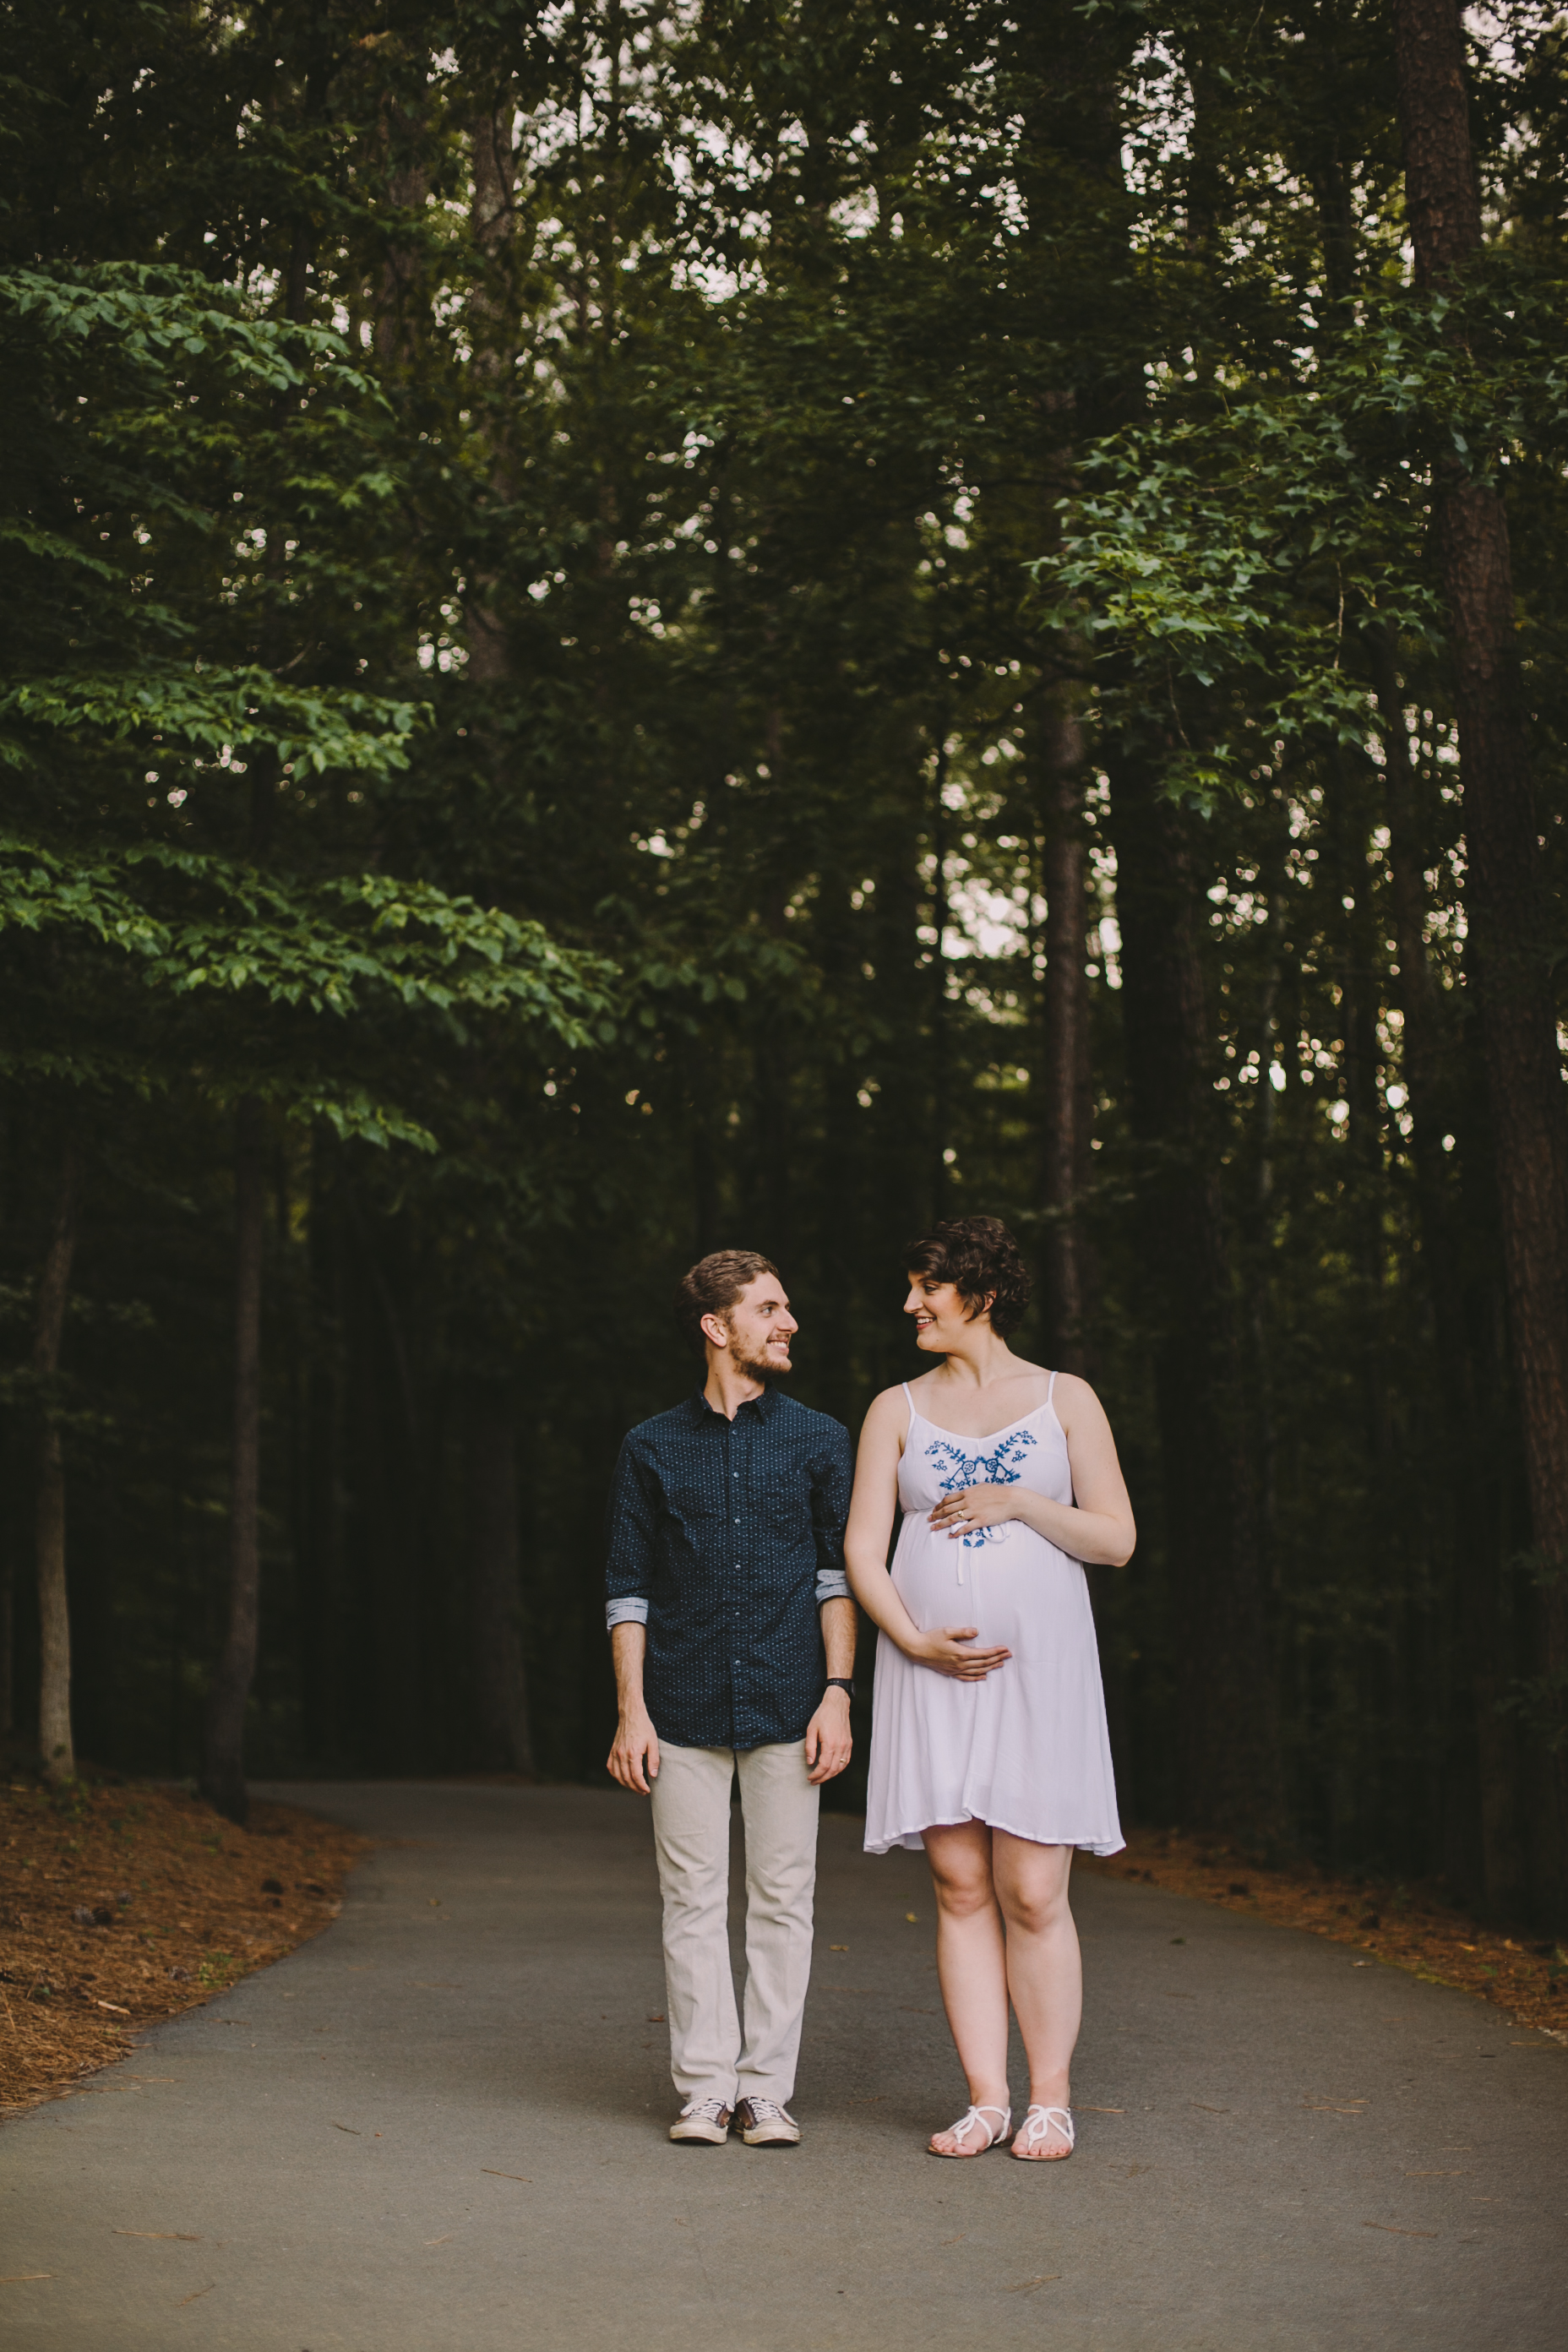 Lydia, Charlie, and Knox Greenwald Maternity Photos Nashville Maternity Photography-10.jpg